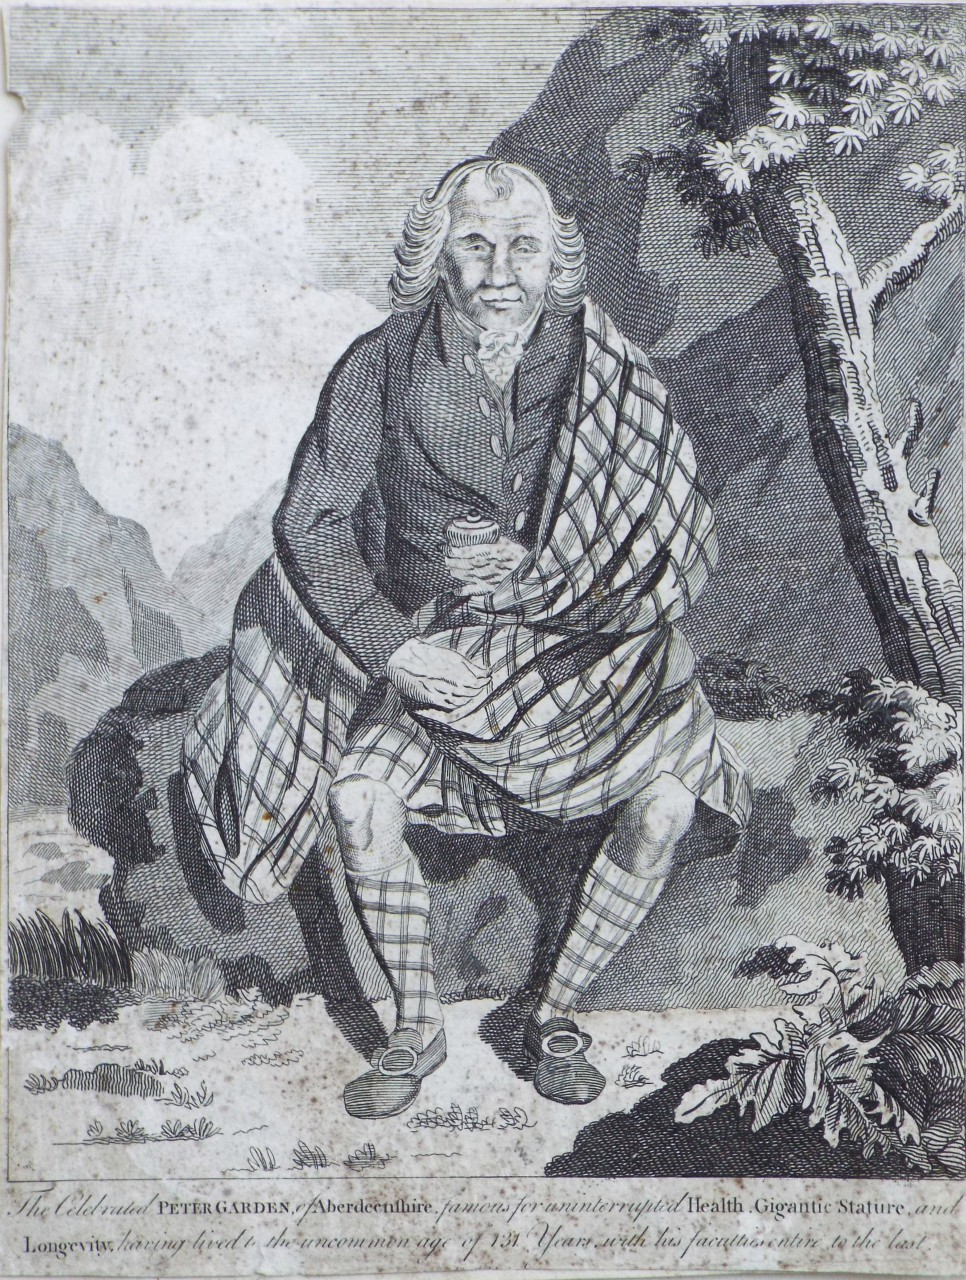 Print - The Celebrated Peter Garden, of Aberdeenshire, famous for uninterrupted Health, Gigantic Stature, and Longevity, having lived to the uncommonl age of 131 Years, with his faculties entire to the last.